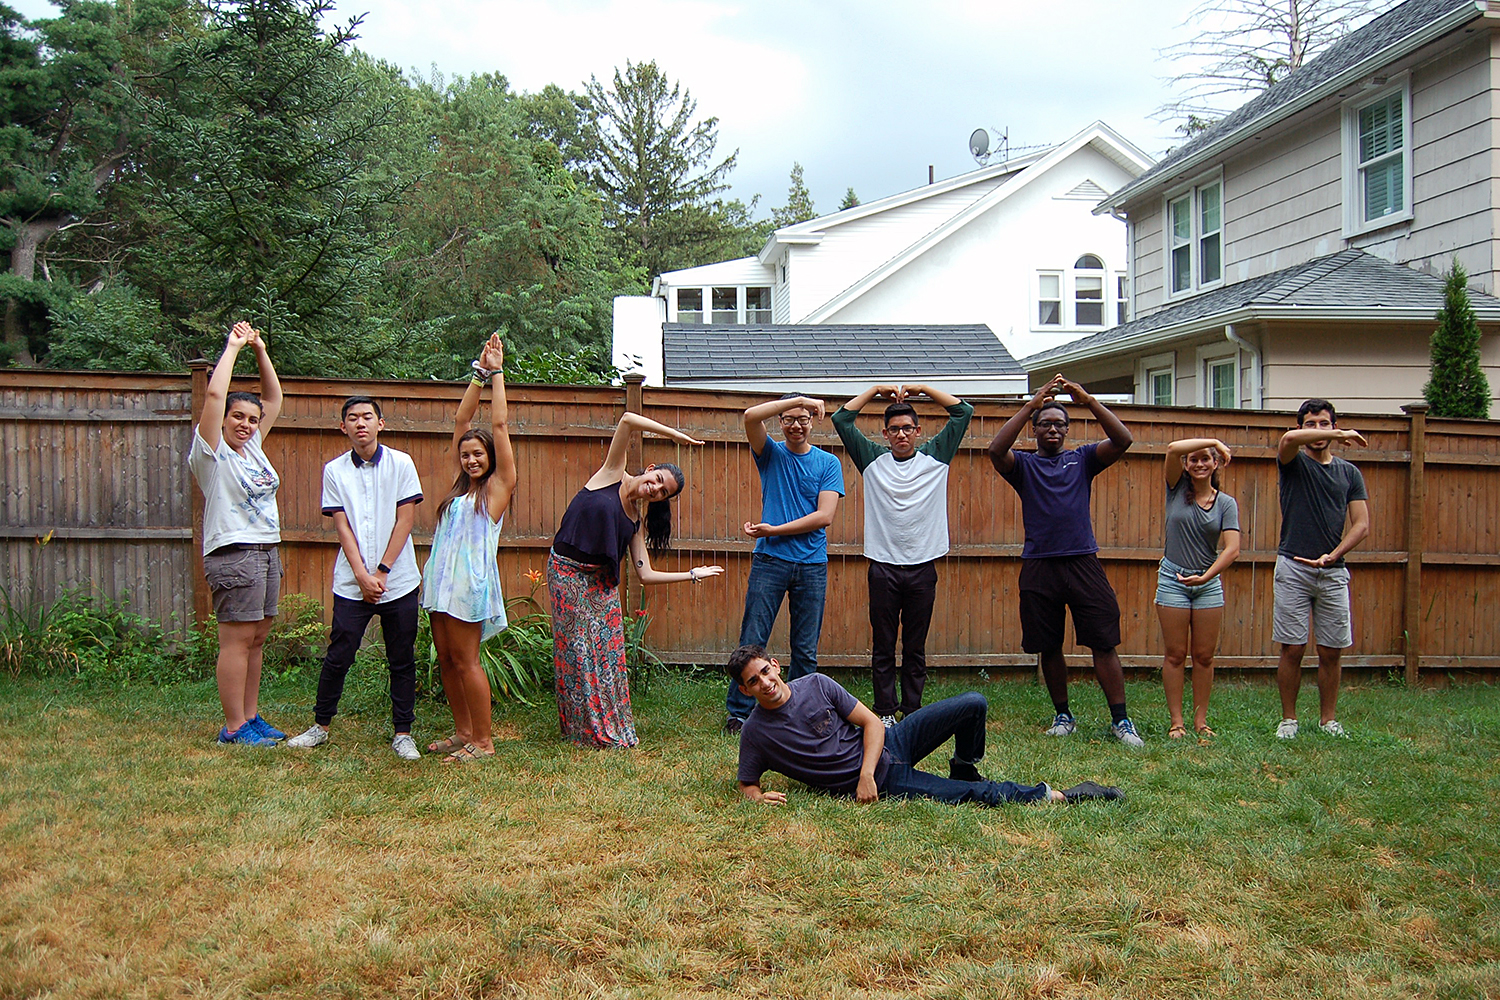 Ten WesMaSS scholars participated in a weeklong program on campus this summer.